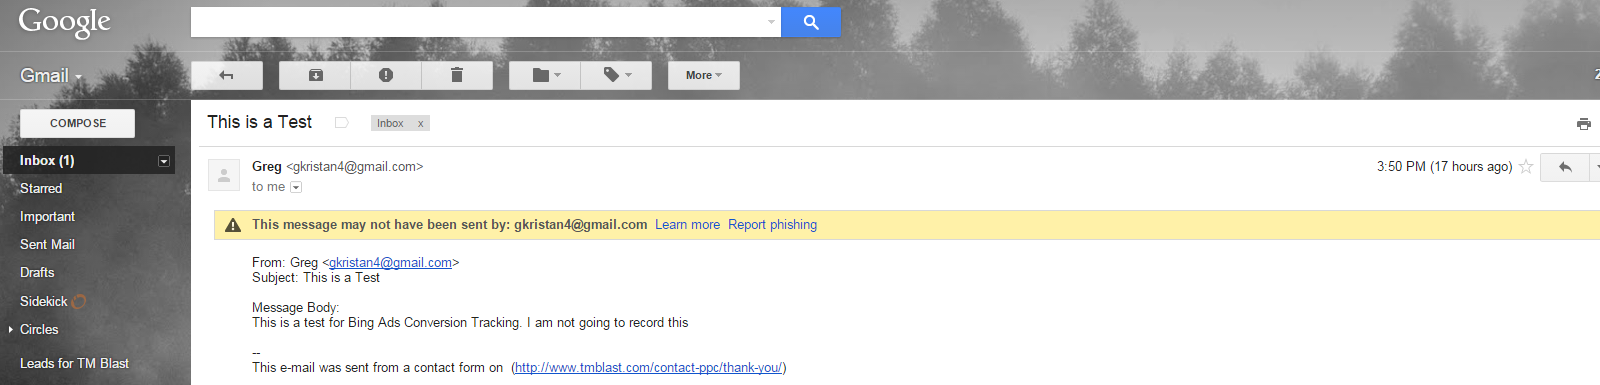 Email in Gmail